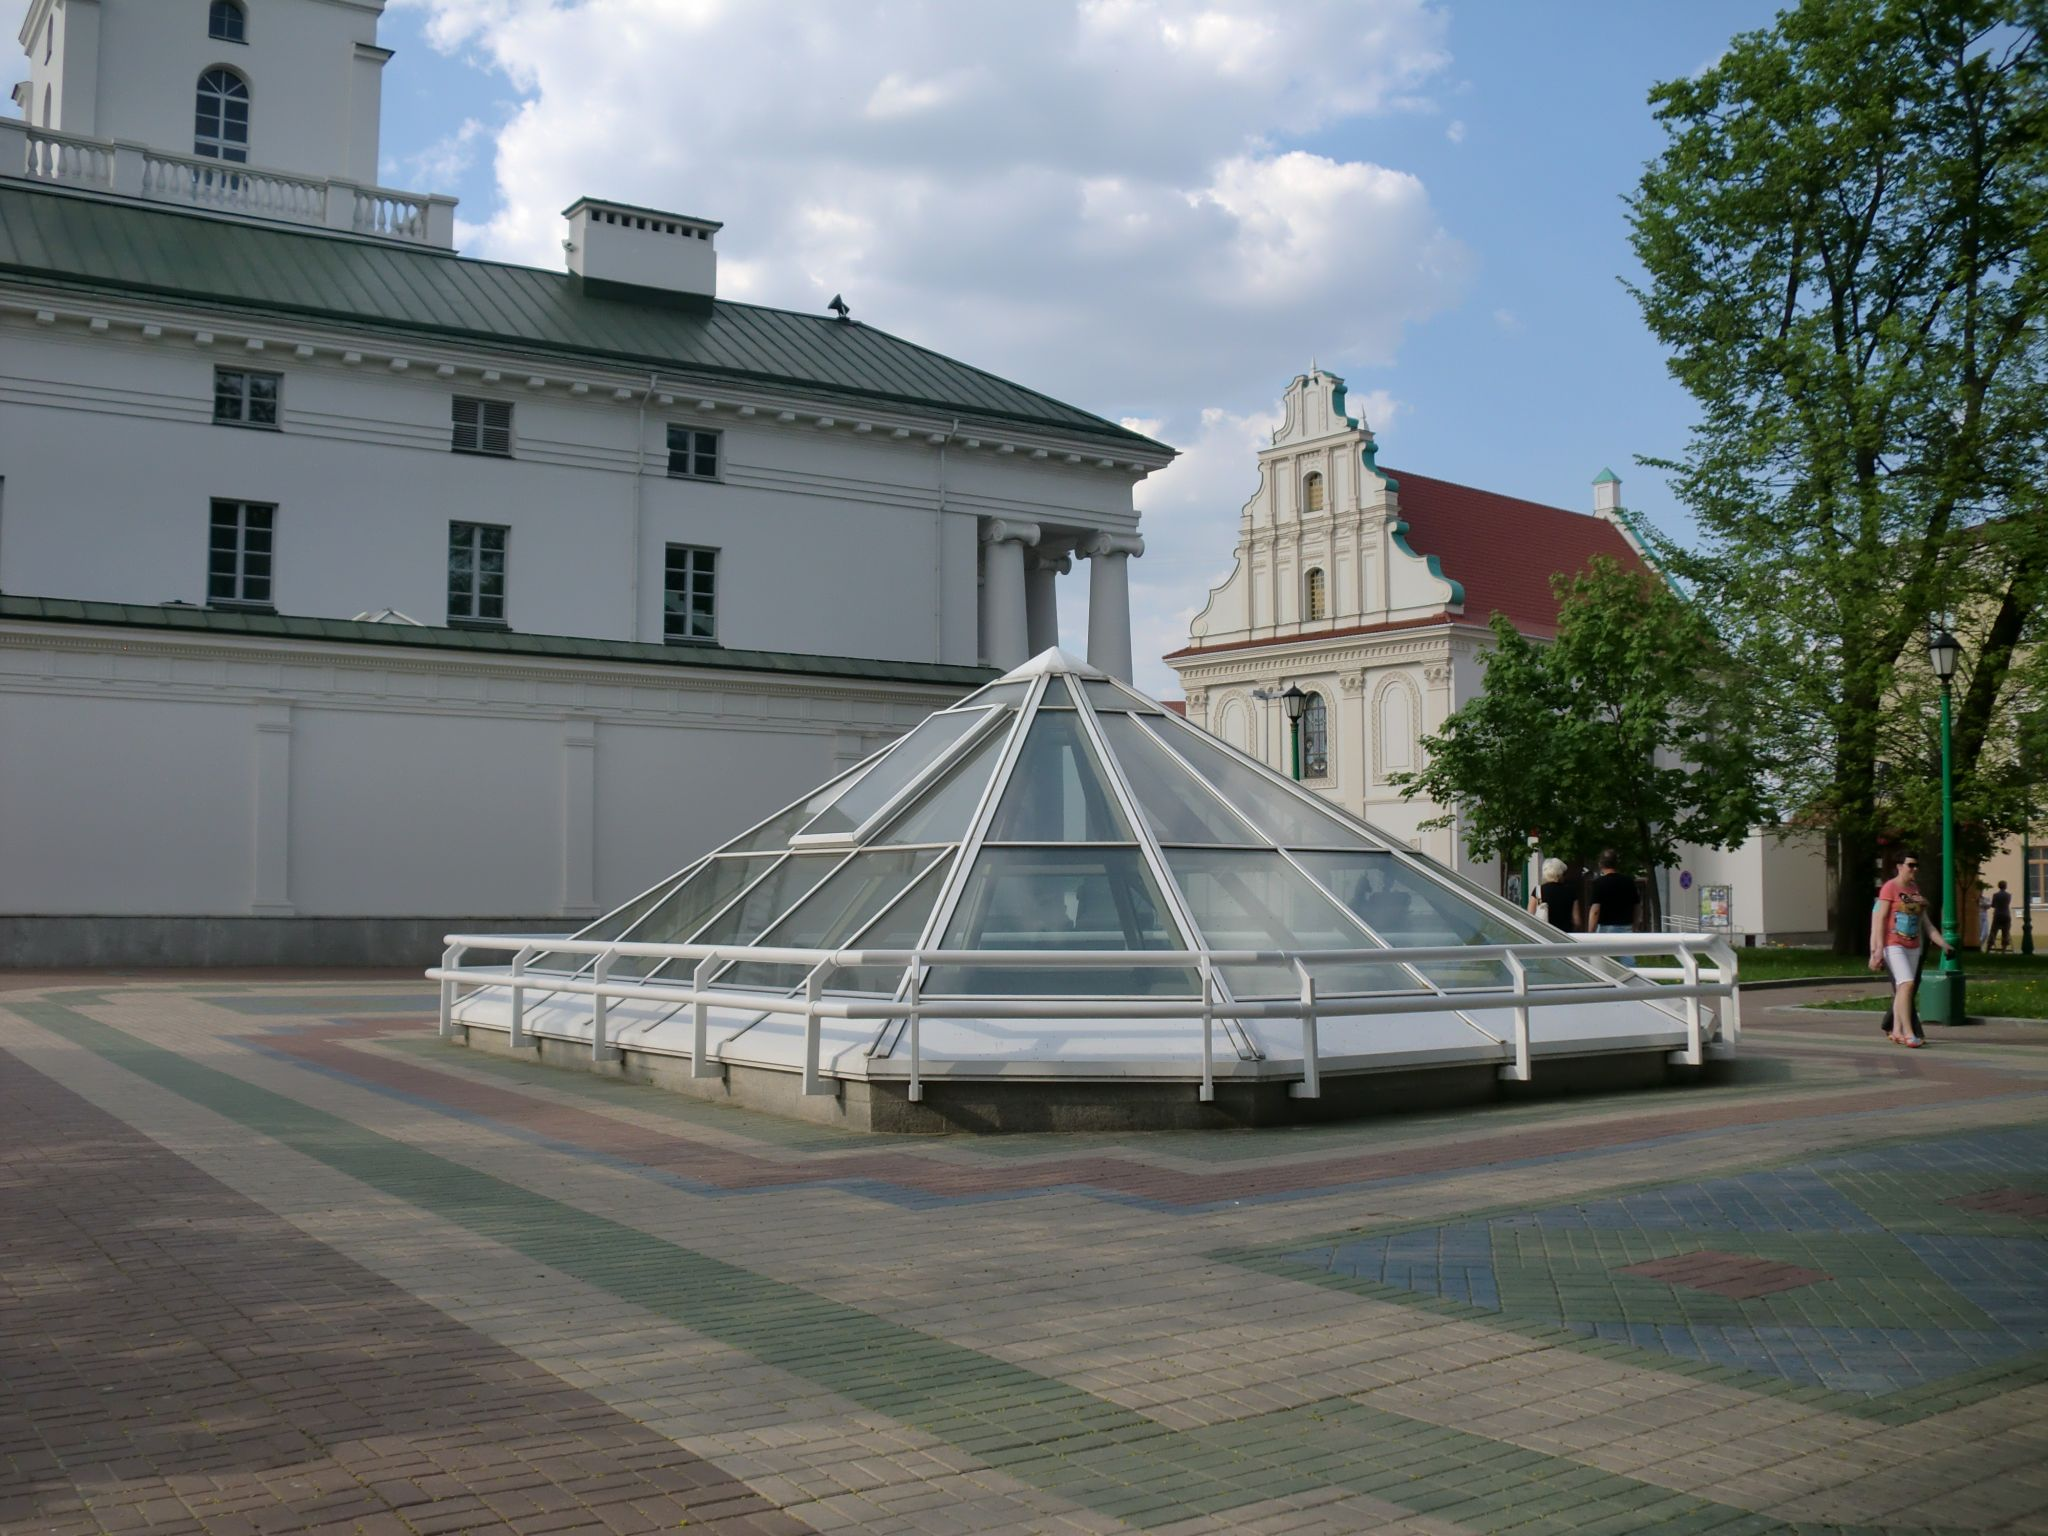 Minsk old town 5 - Minsk, 1 amazing city you have to see